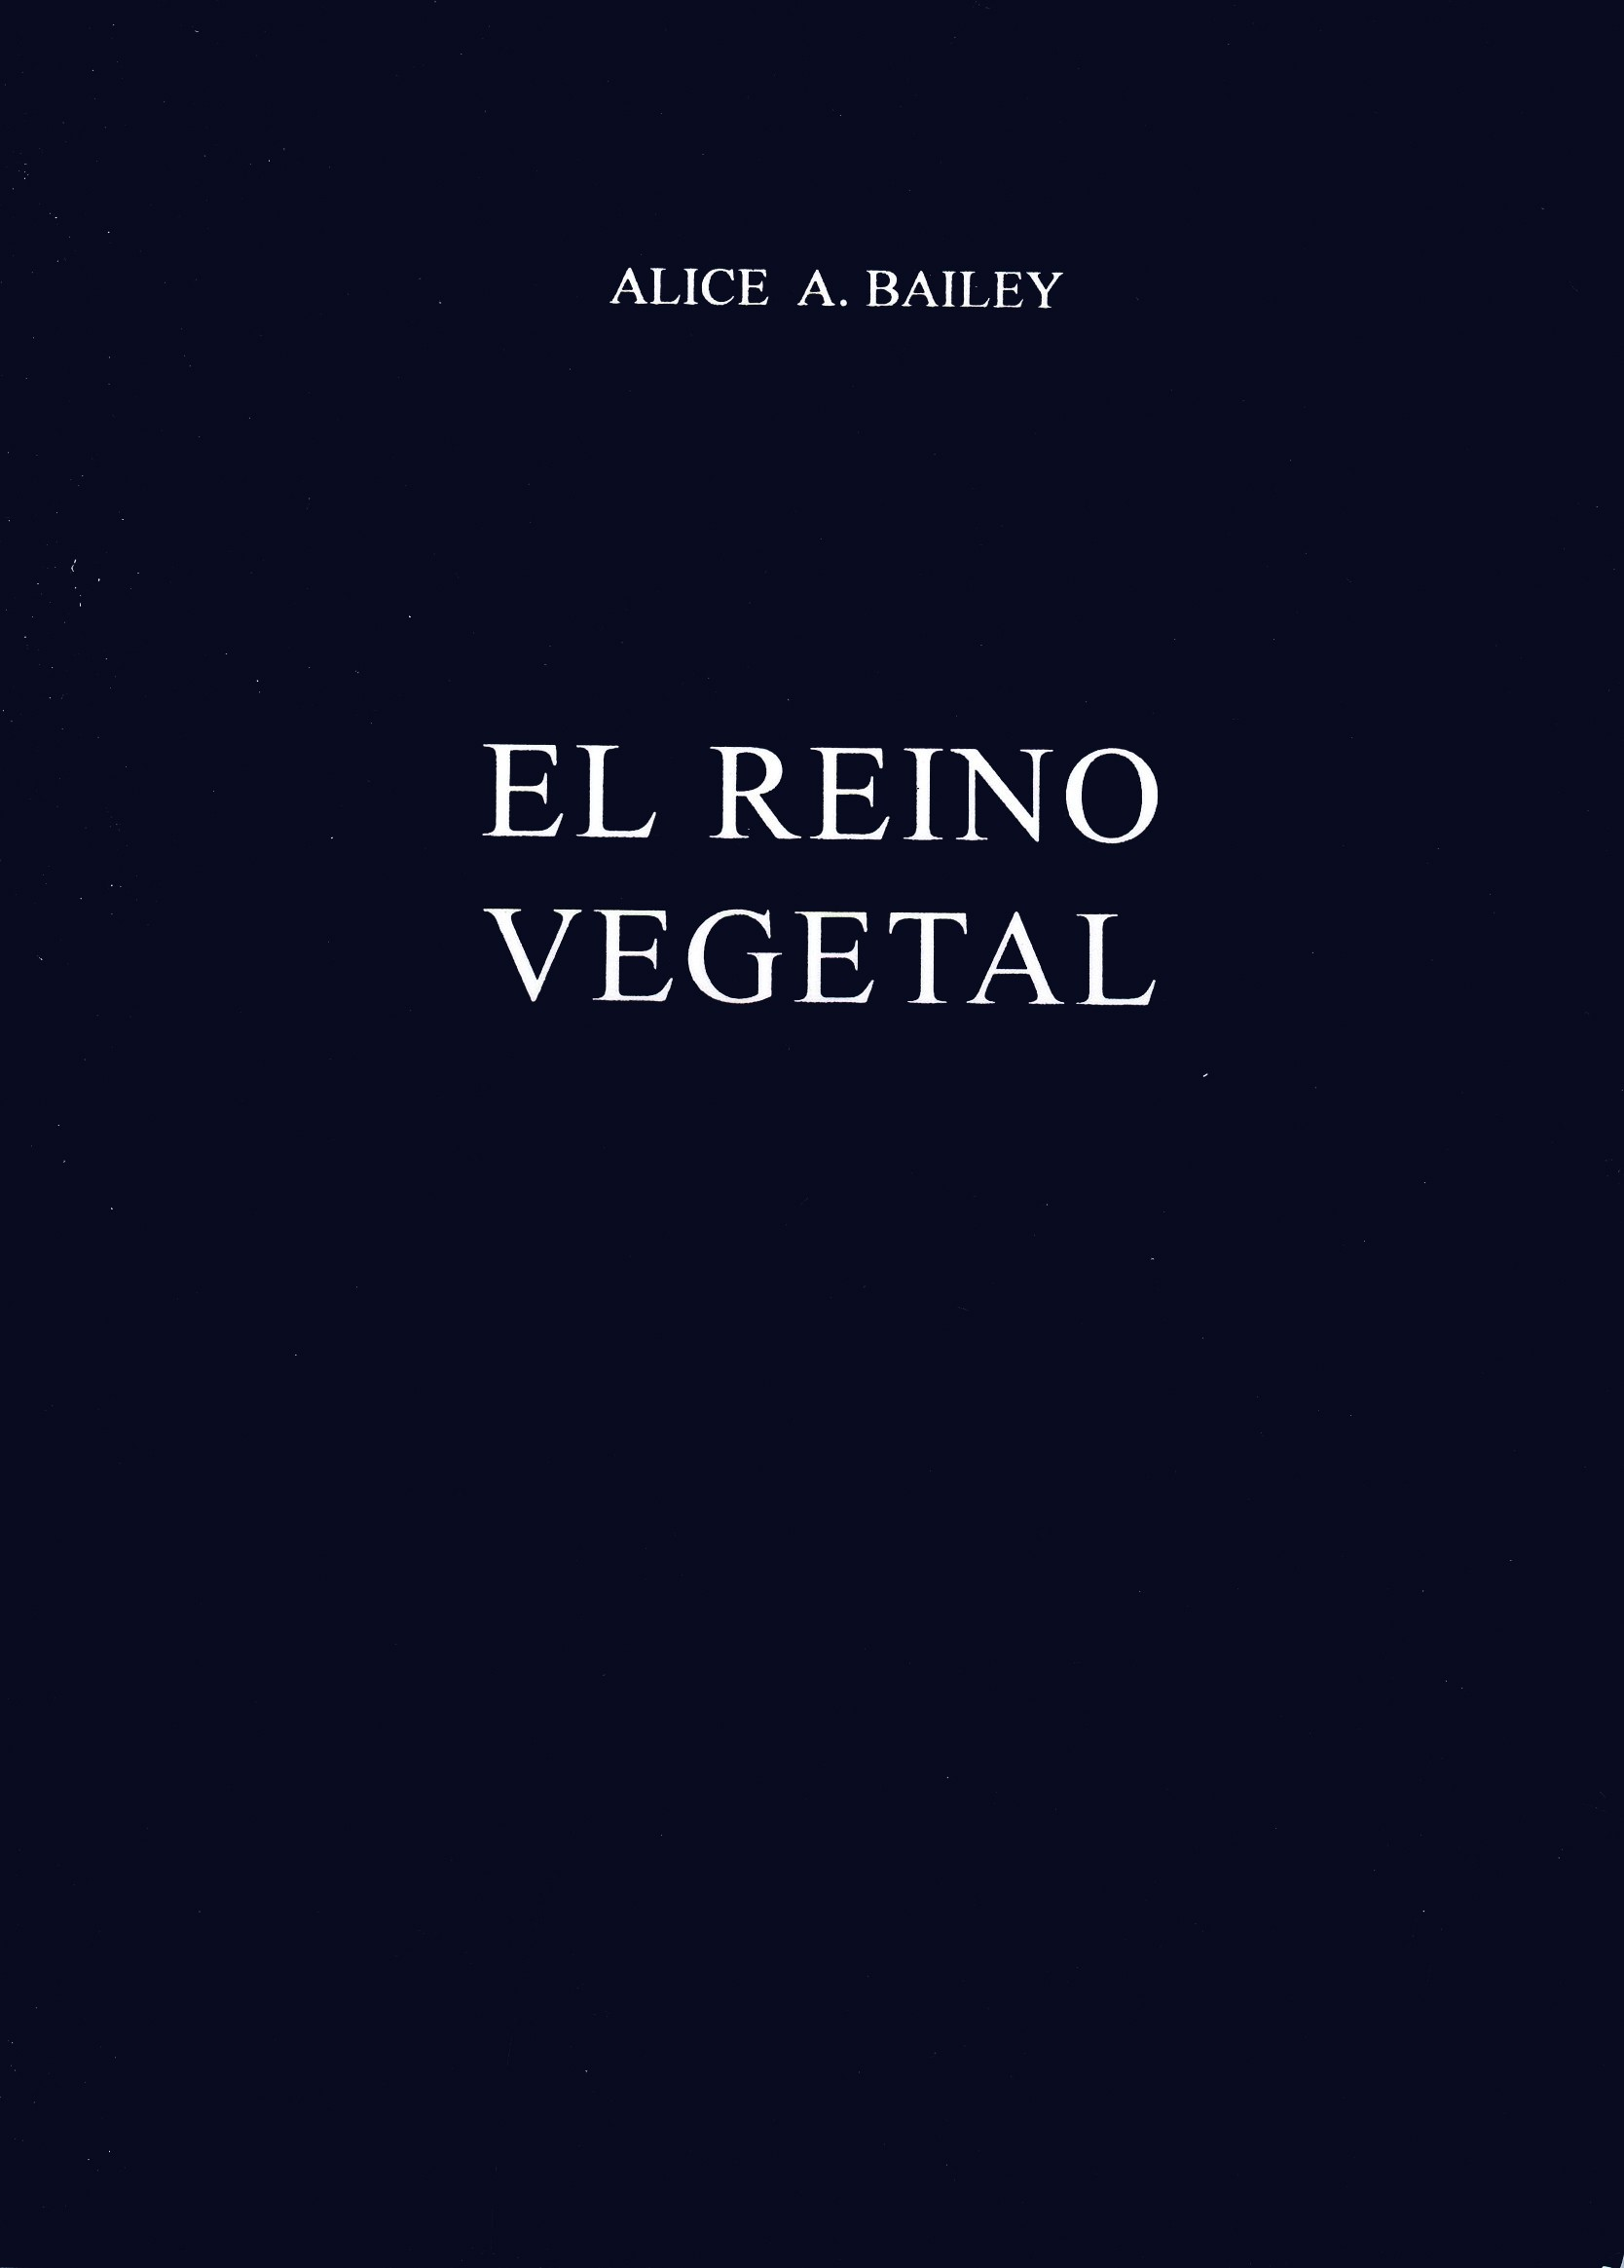 El reino vegetal. Alice A. Bailey.